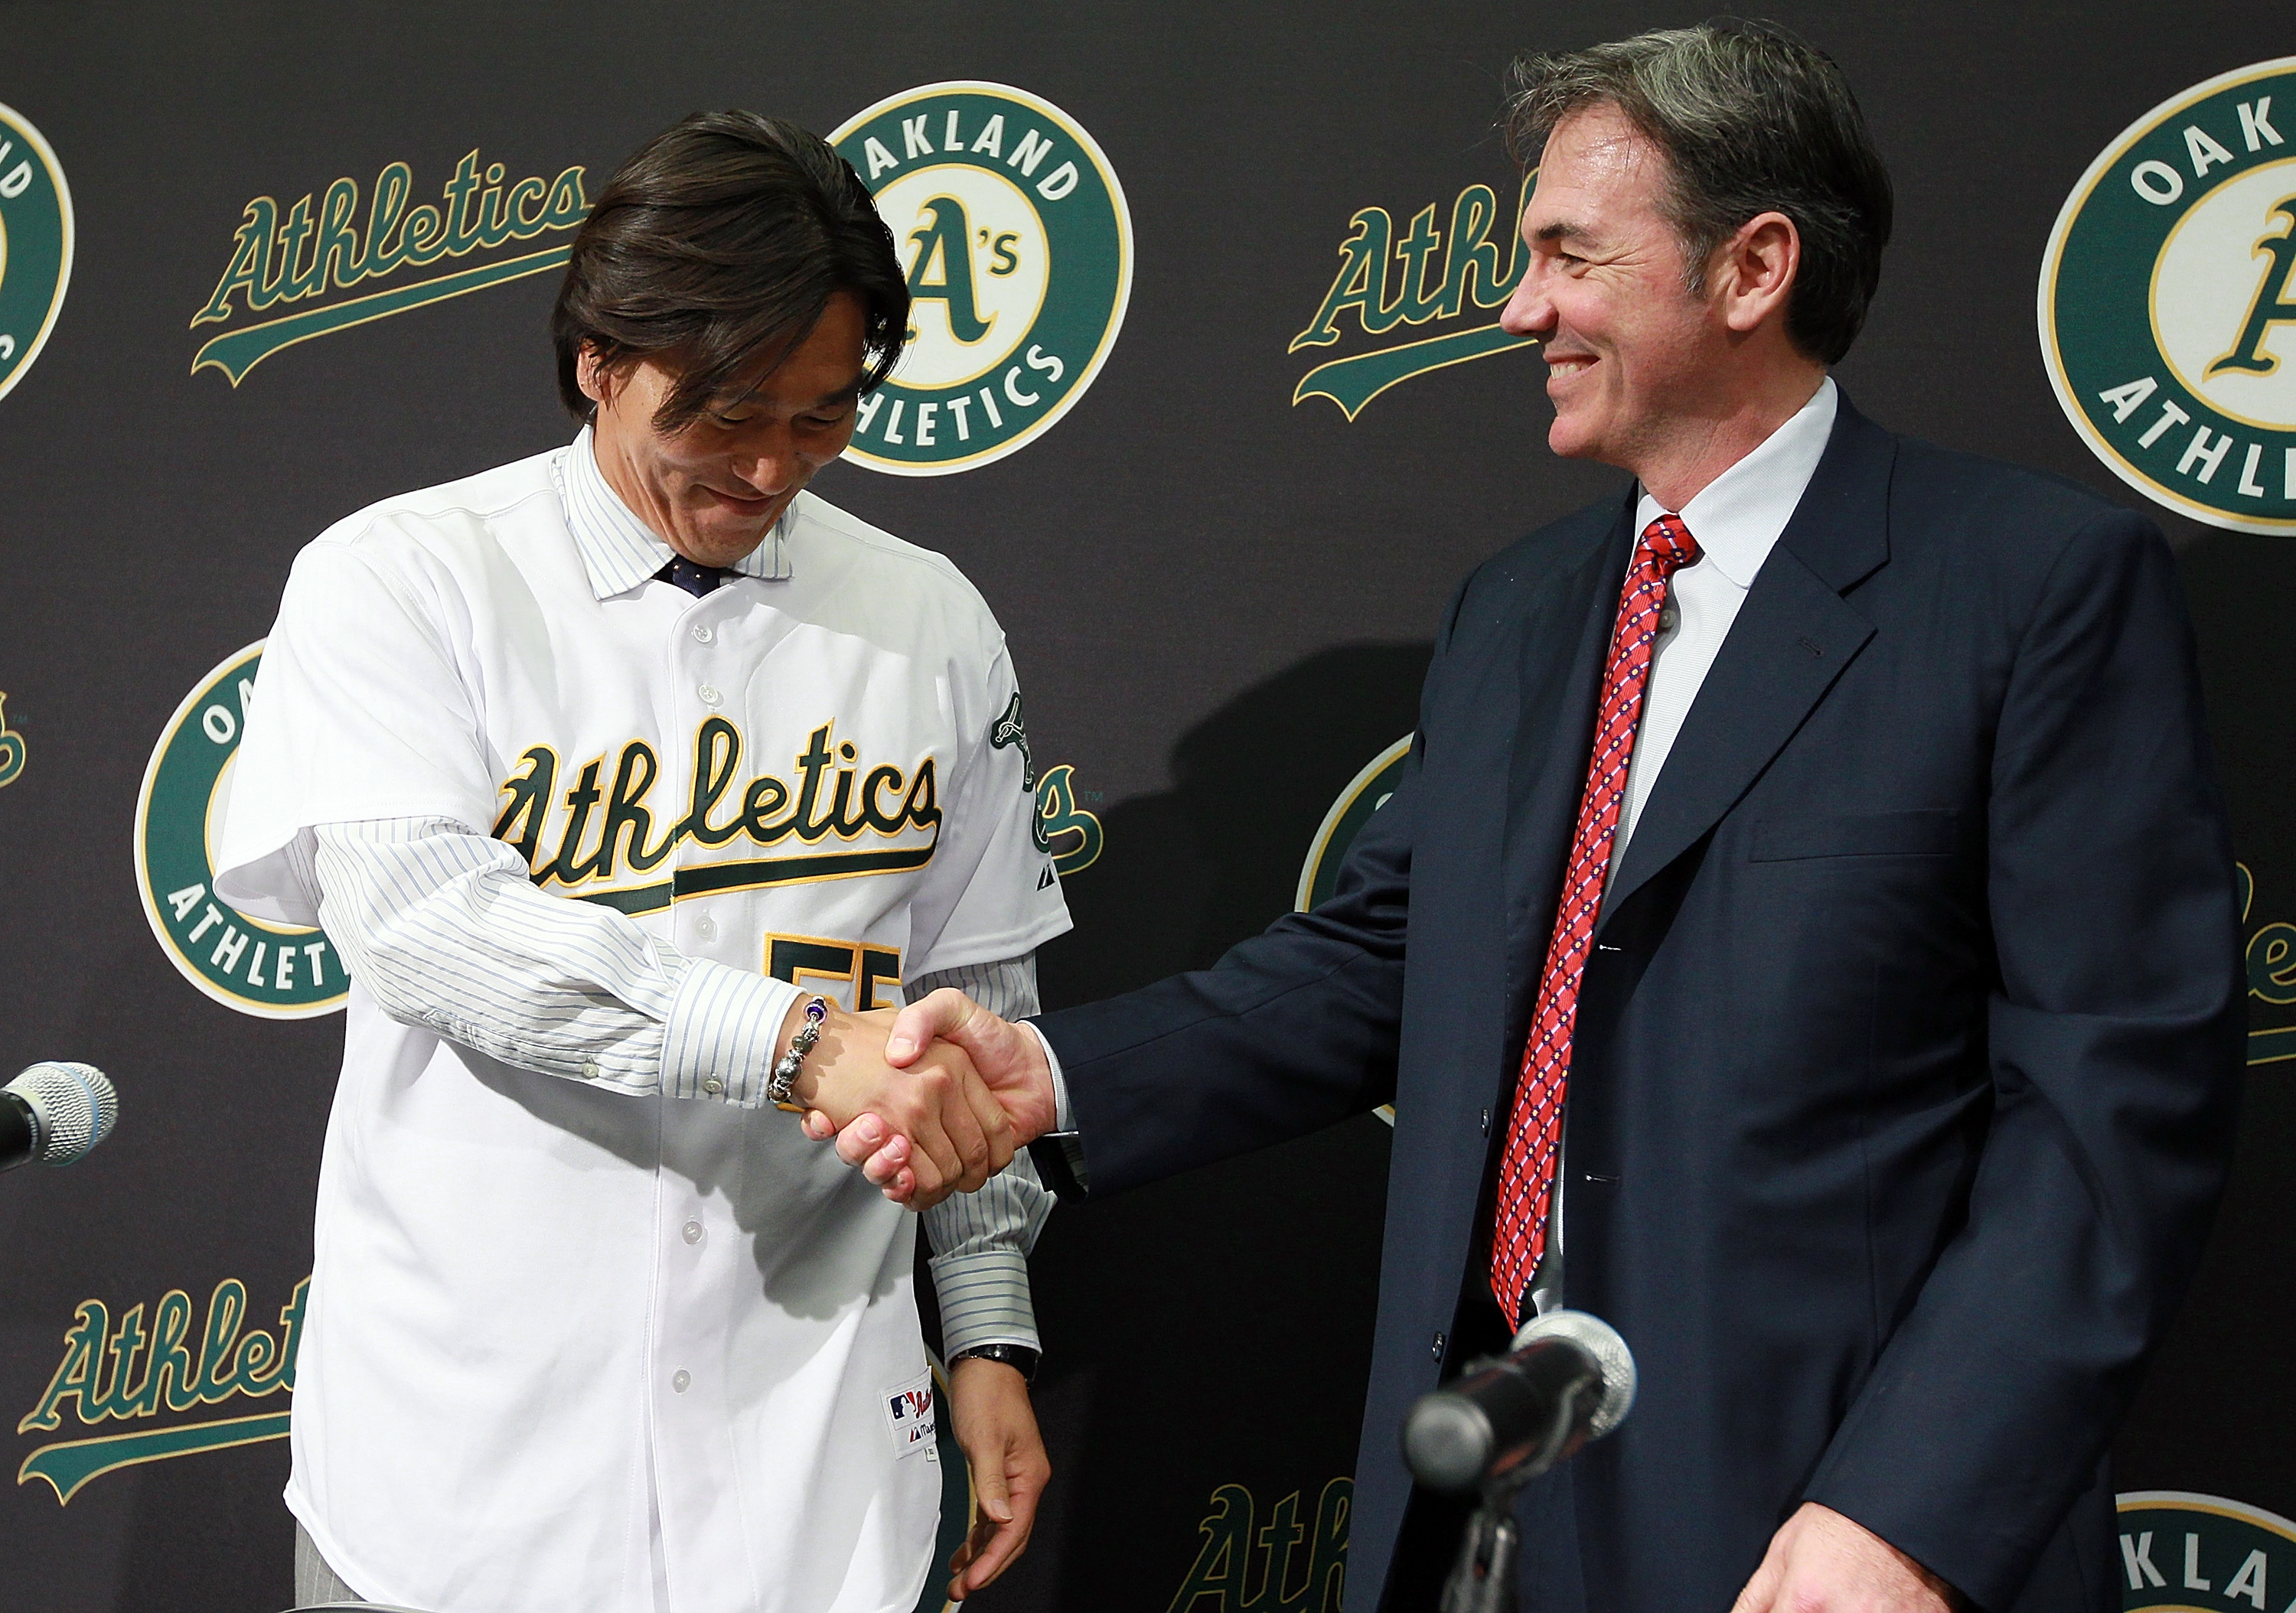 OAKLAND, CA - DECEMBER 14:  Hideki Matsui (L) shakes hands with Oakland Athletics general manager Billy Beane (R) after trying on his new jersey during a press conference where he was introduced as the newest member of the Oakland Athletics at Oakland-Ala